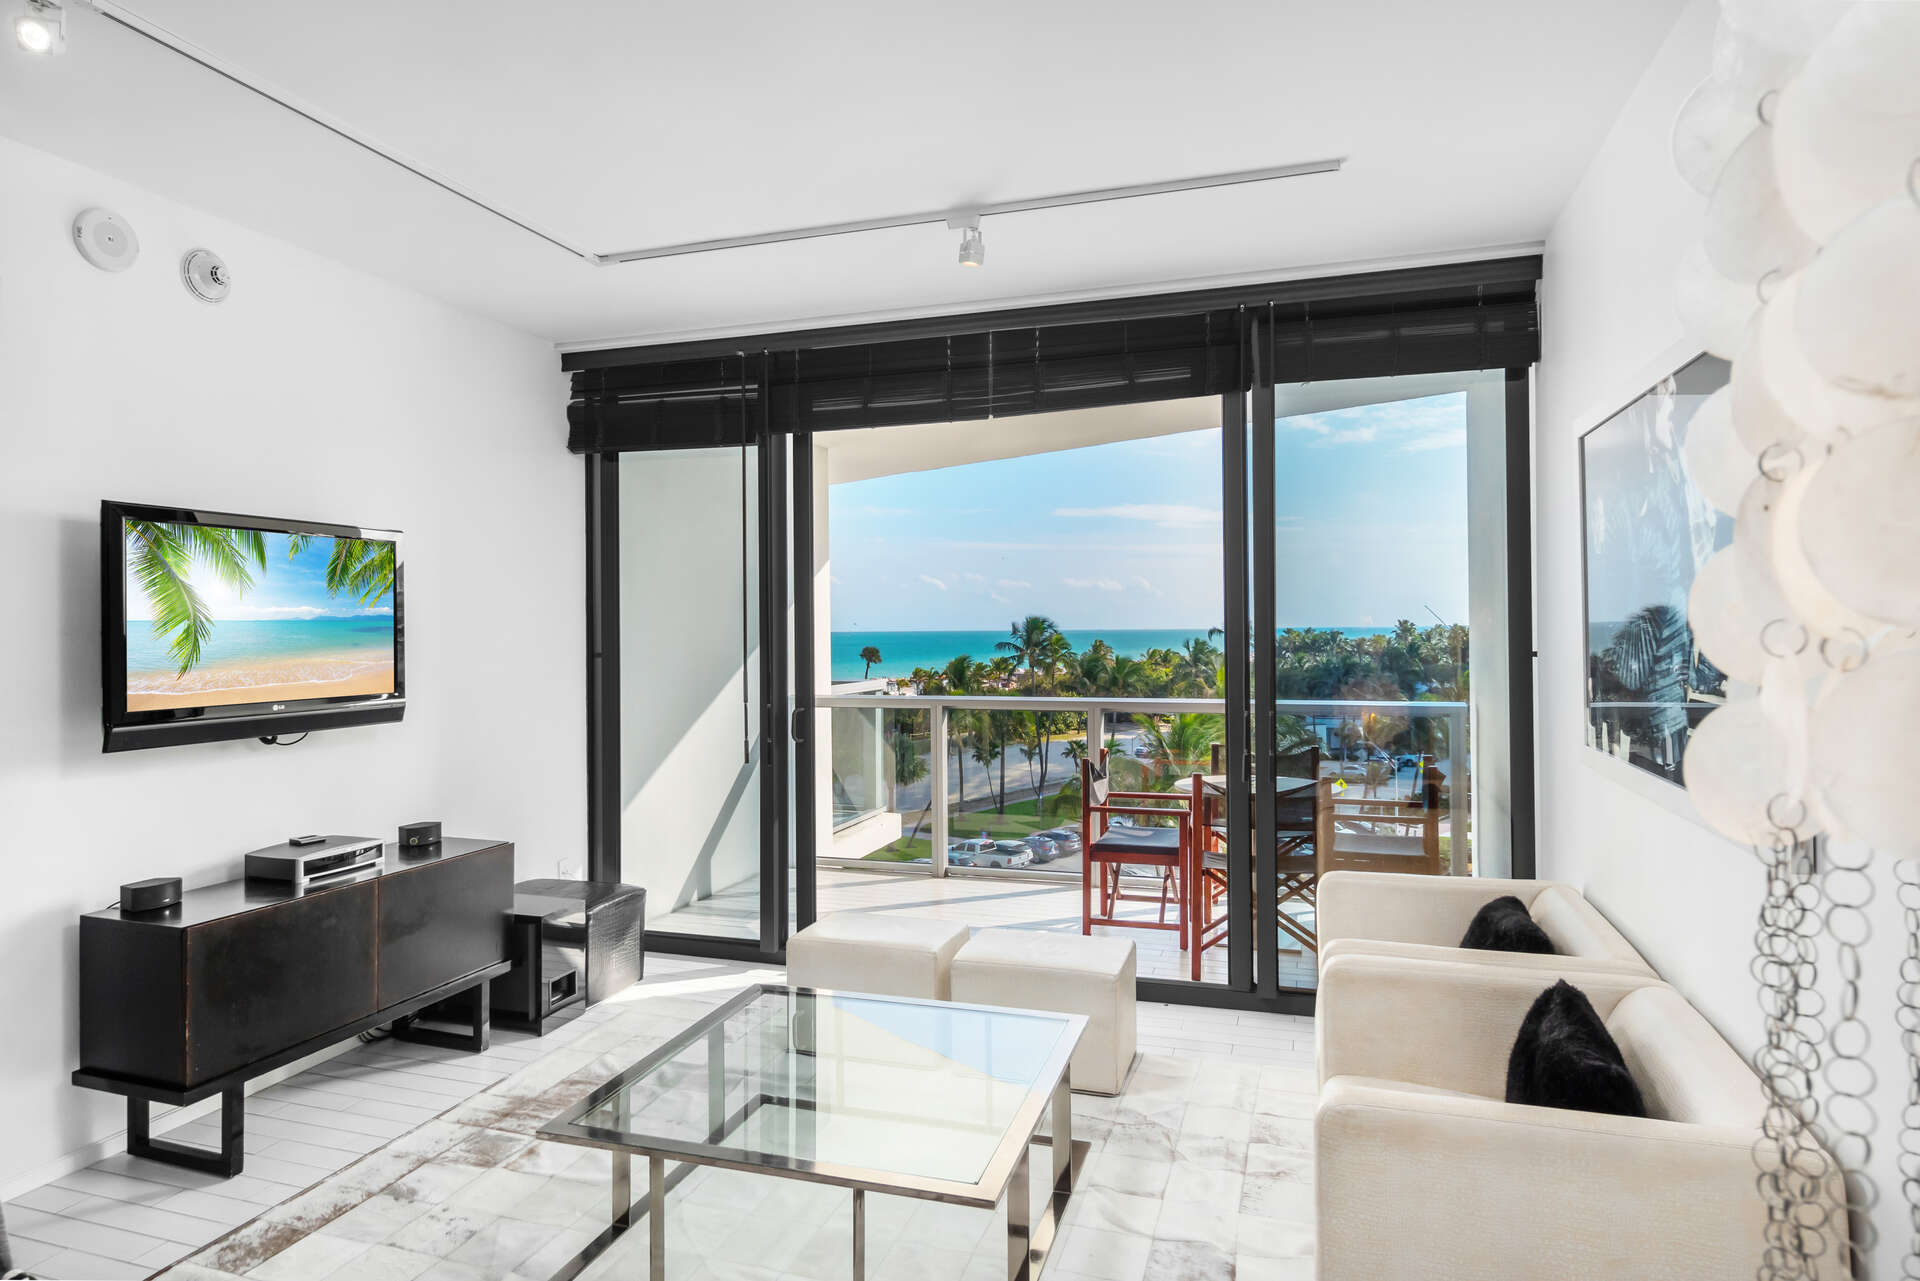 Luxury vacation rentals usa - Florida - Miami beach - W hotel south beach - #514 | 1 BDM with Den - Image 1/21